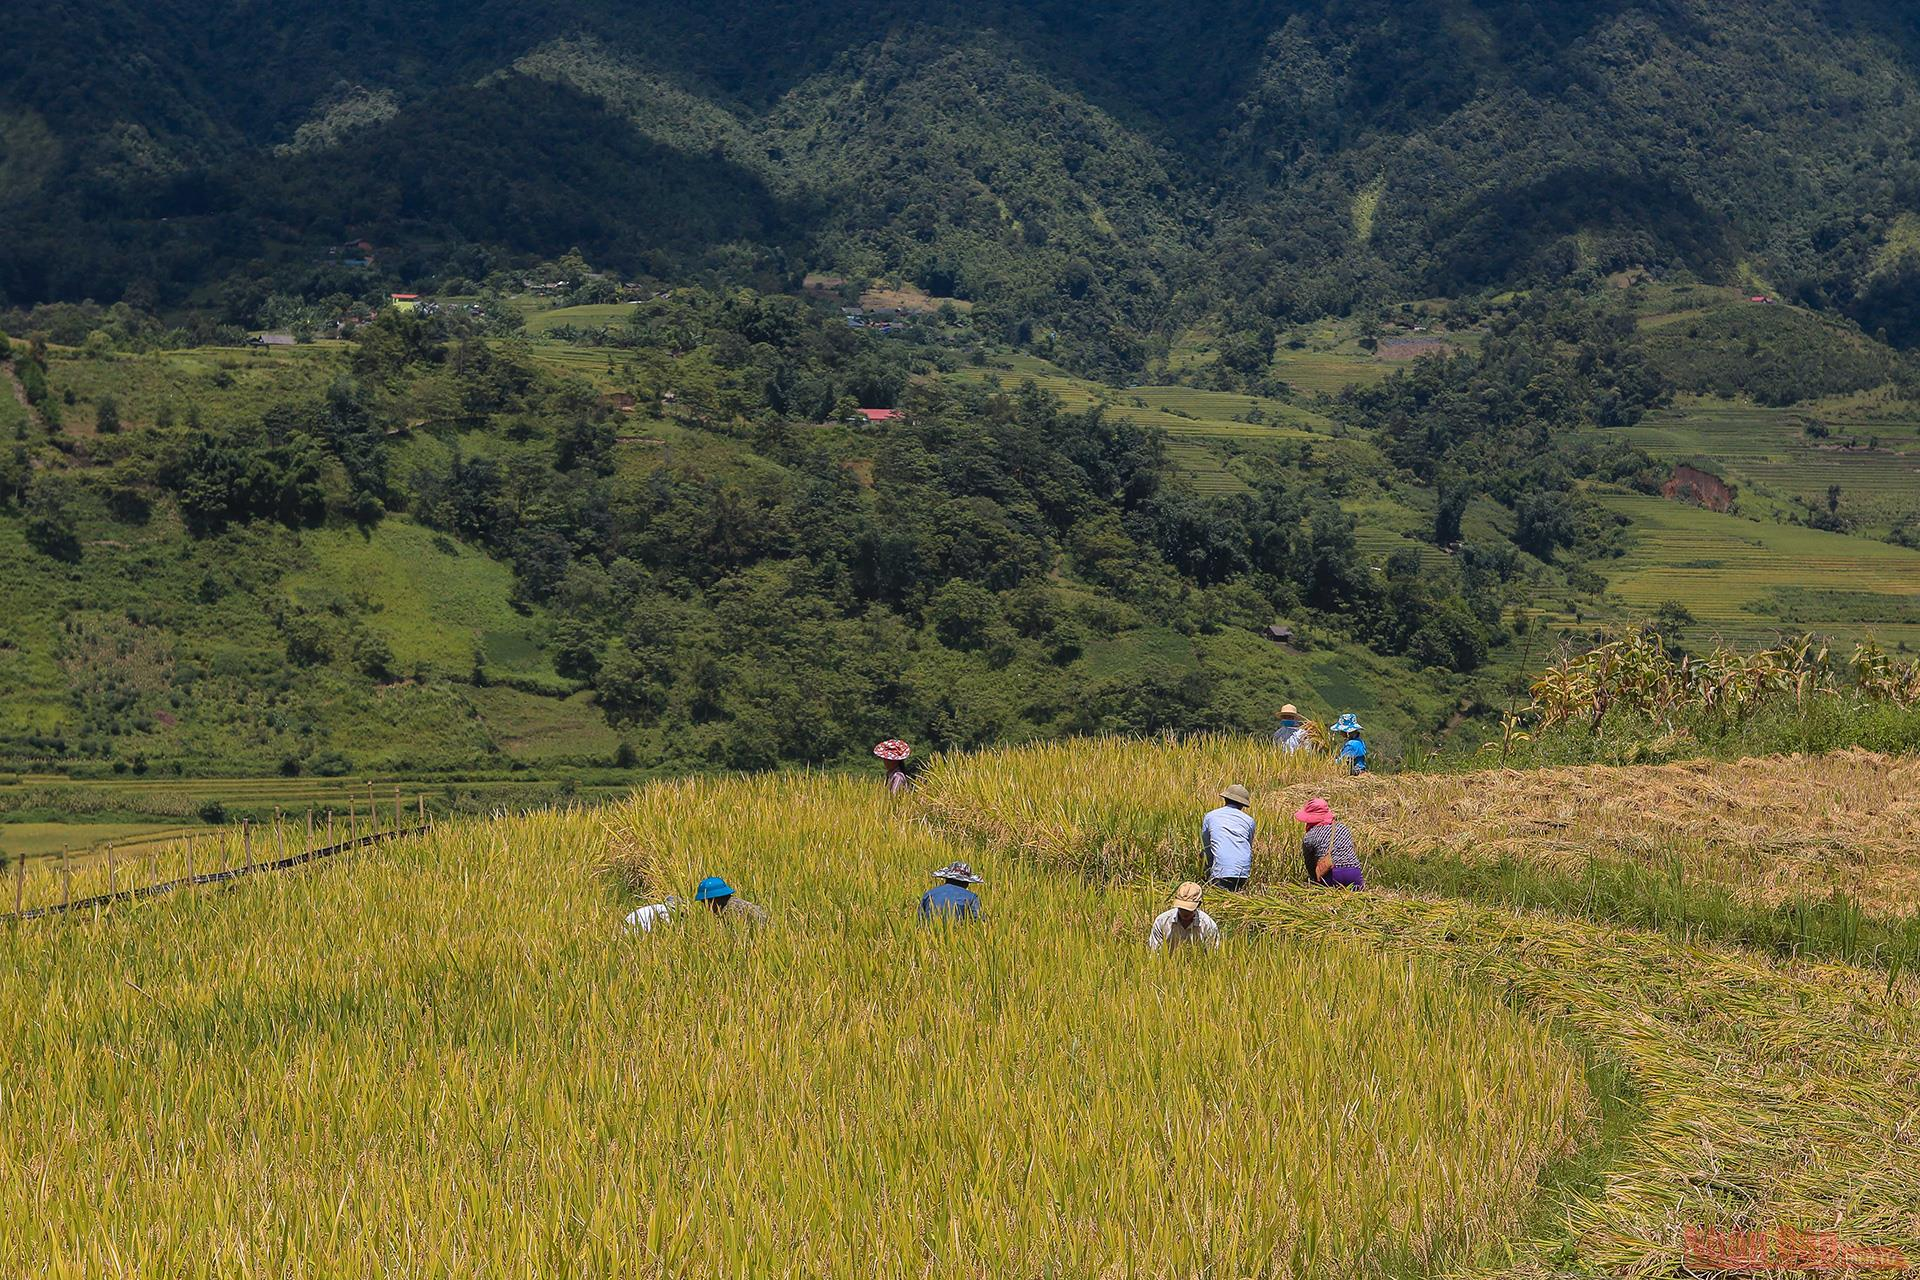 magnificent y ty plateau in ripening rice season